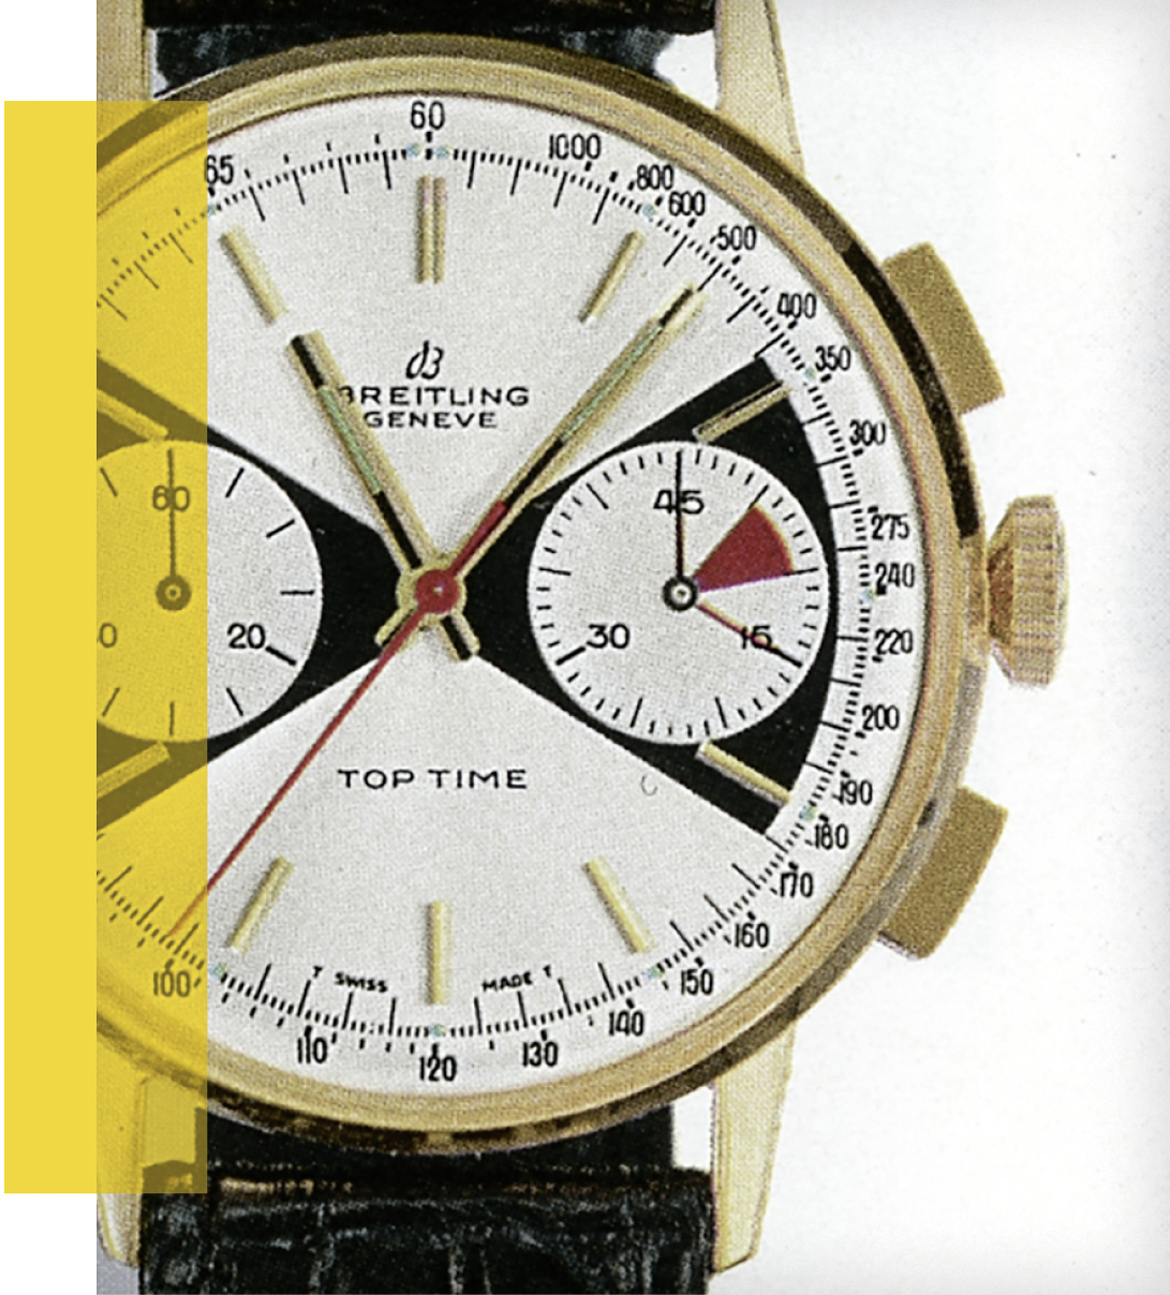 Breitling Top Time Ref. 2003